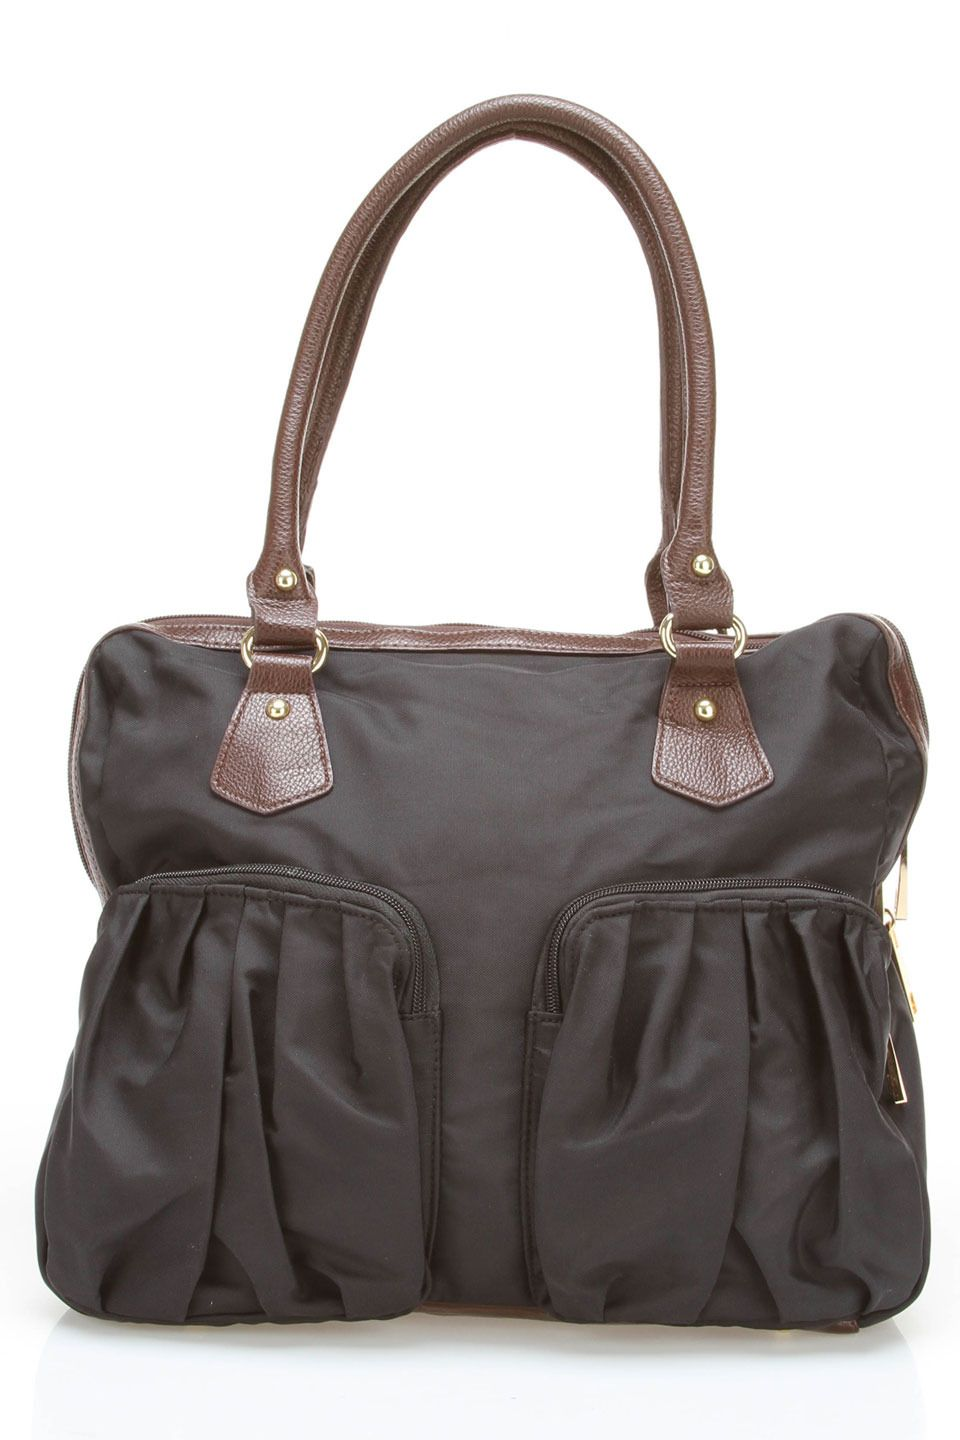 d5a8e3561233 Tiffany   Fred Shopping Tote Hobo In Black And Brown